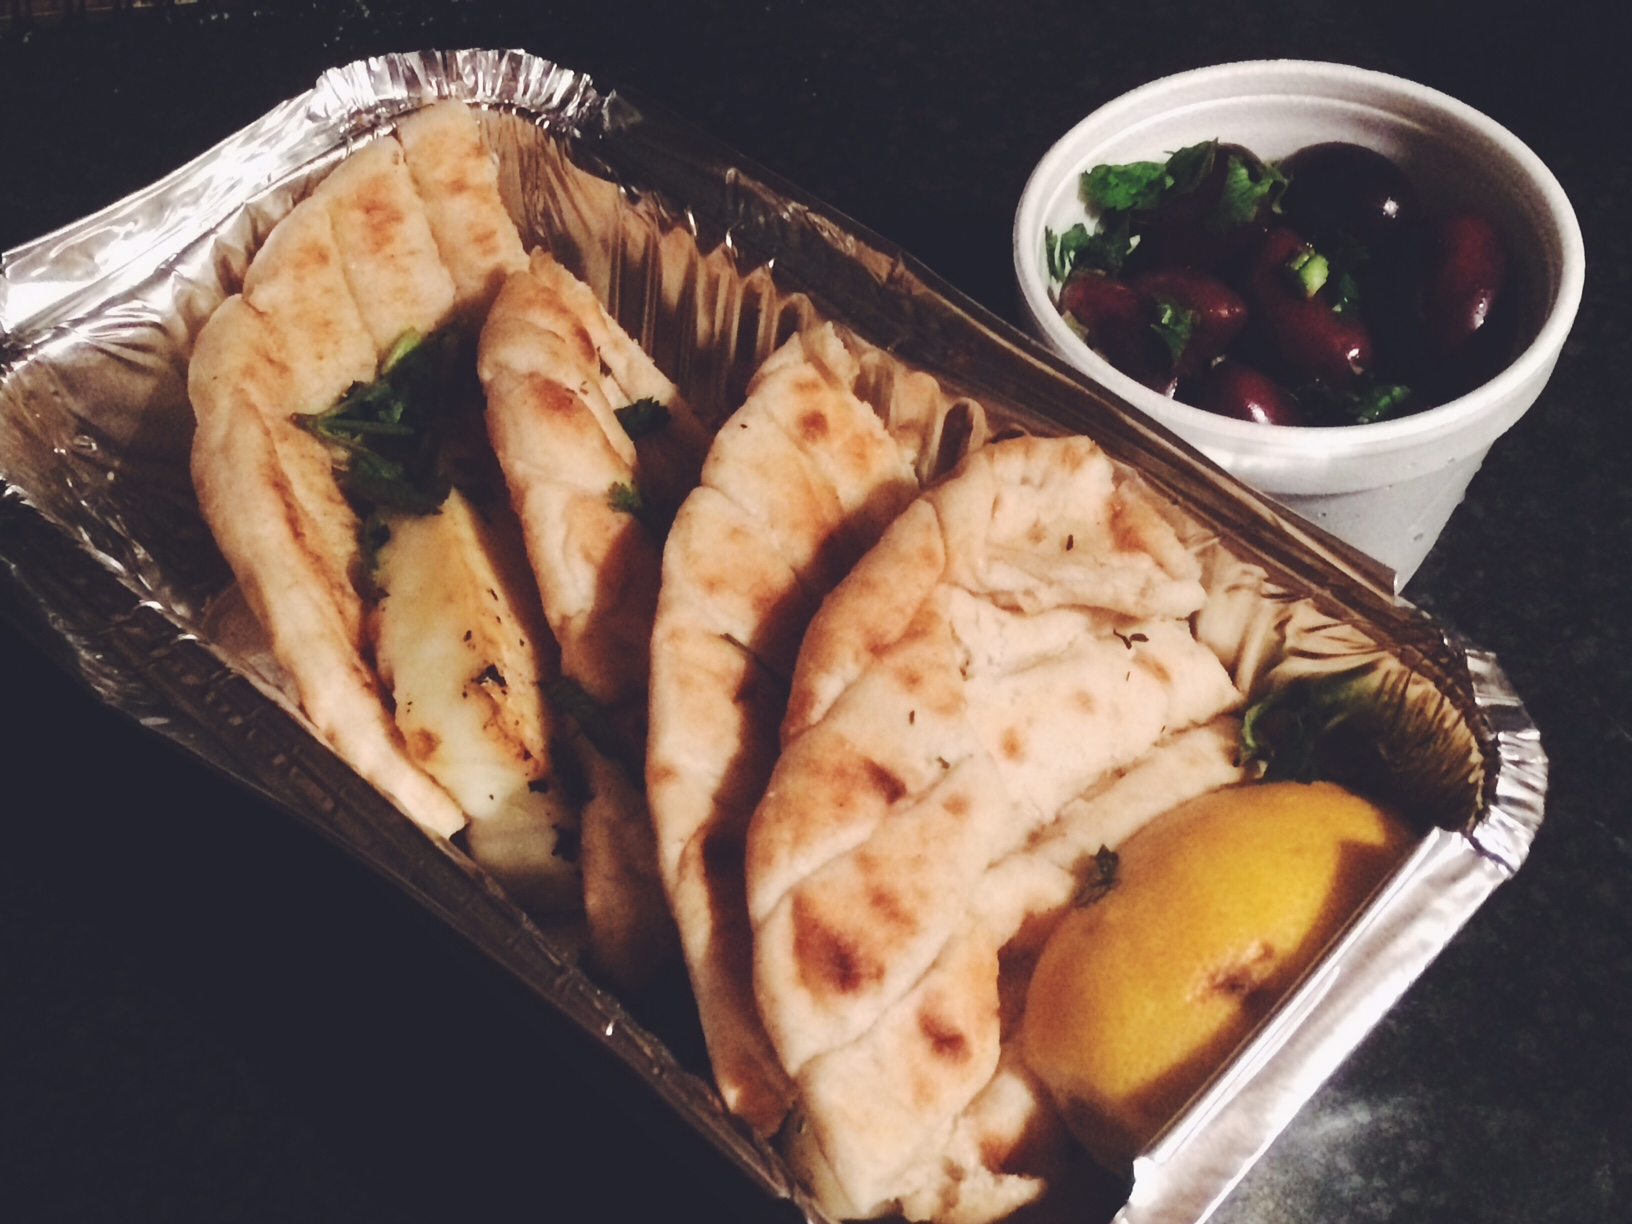 Greek pitta and halloumi with olives